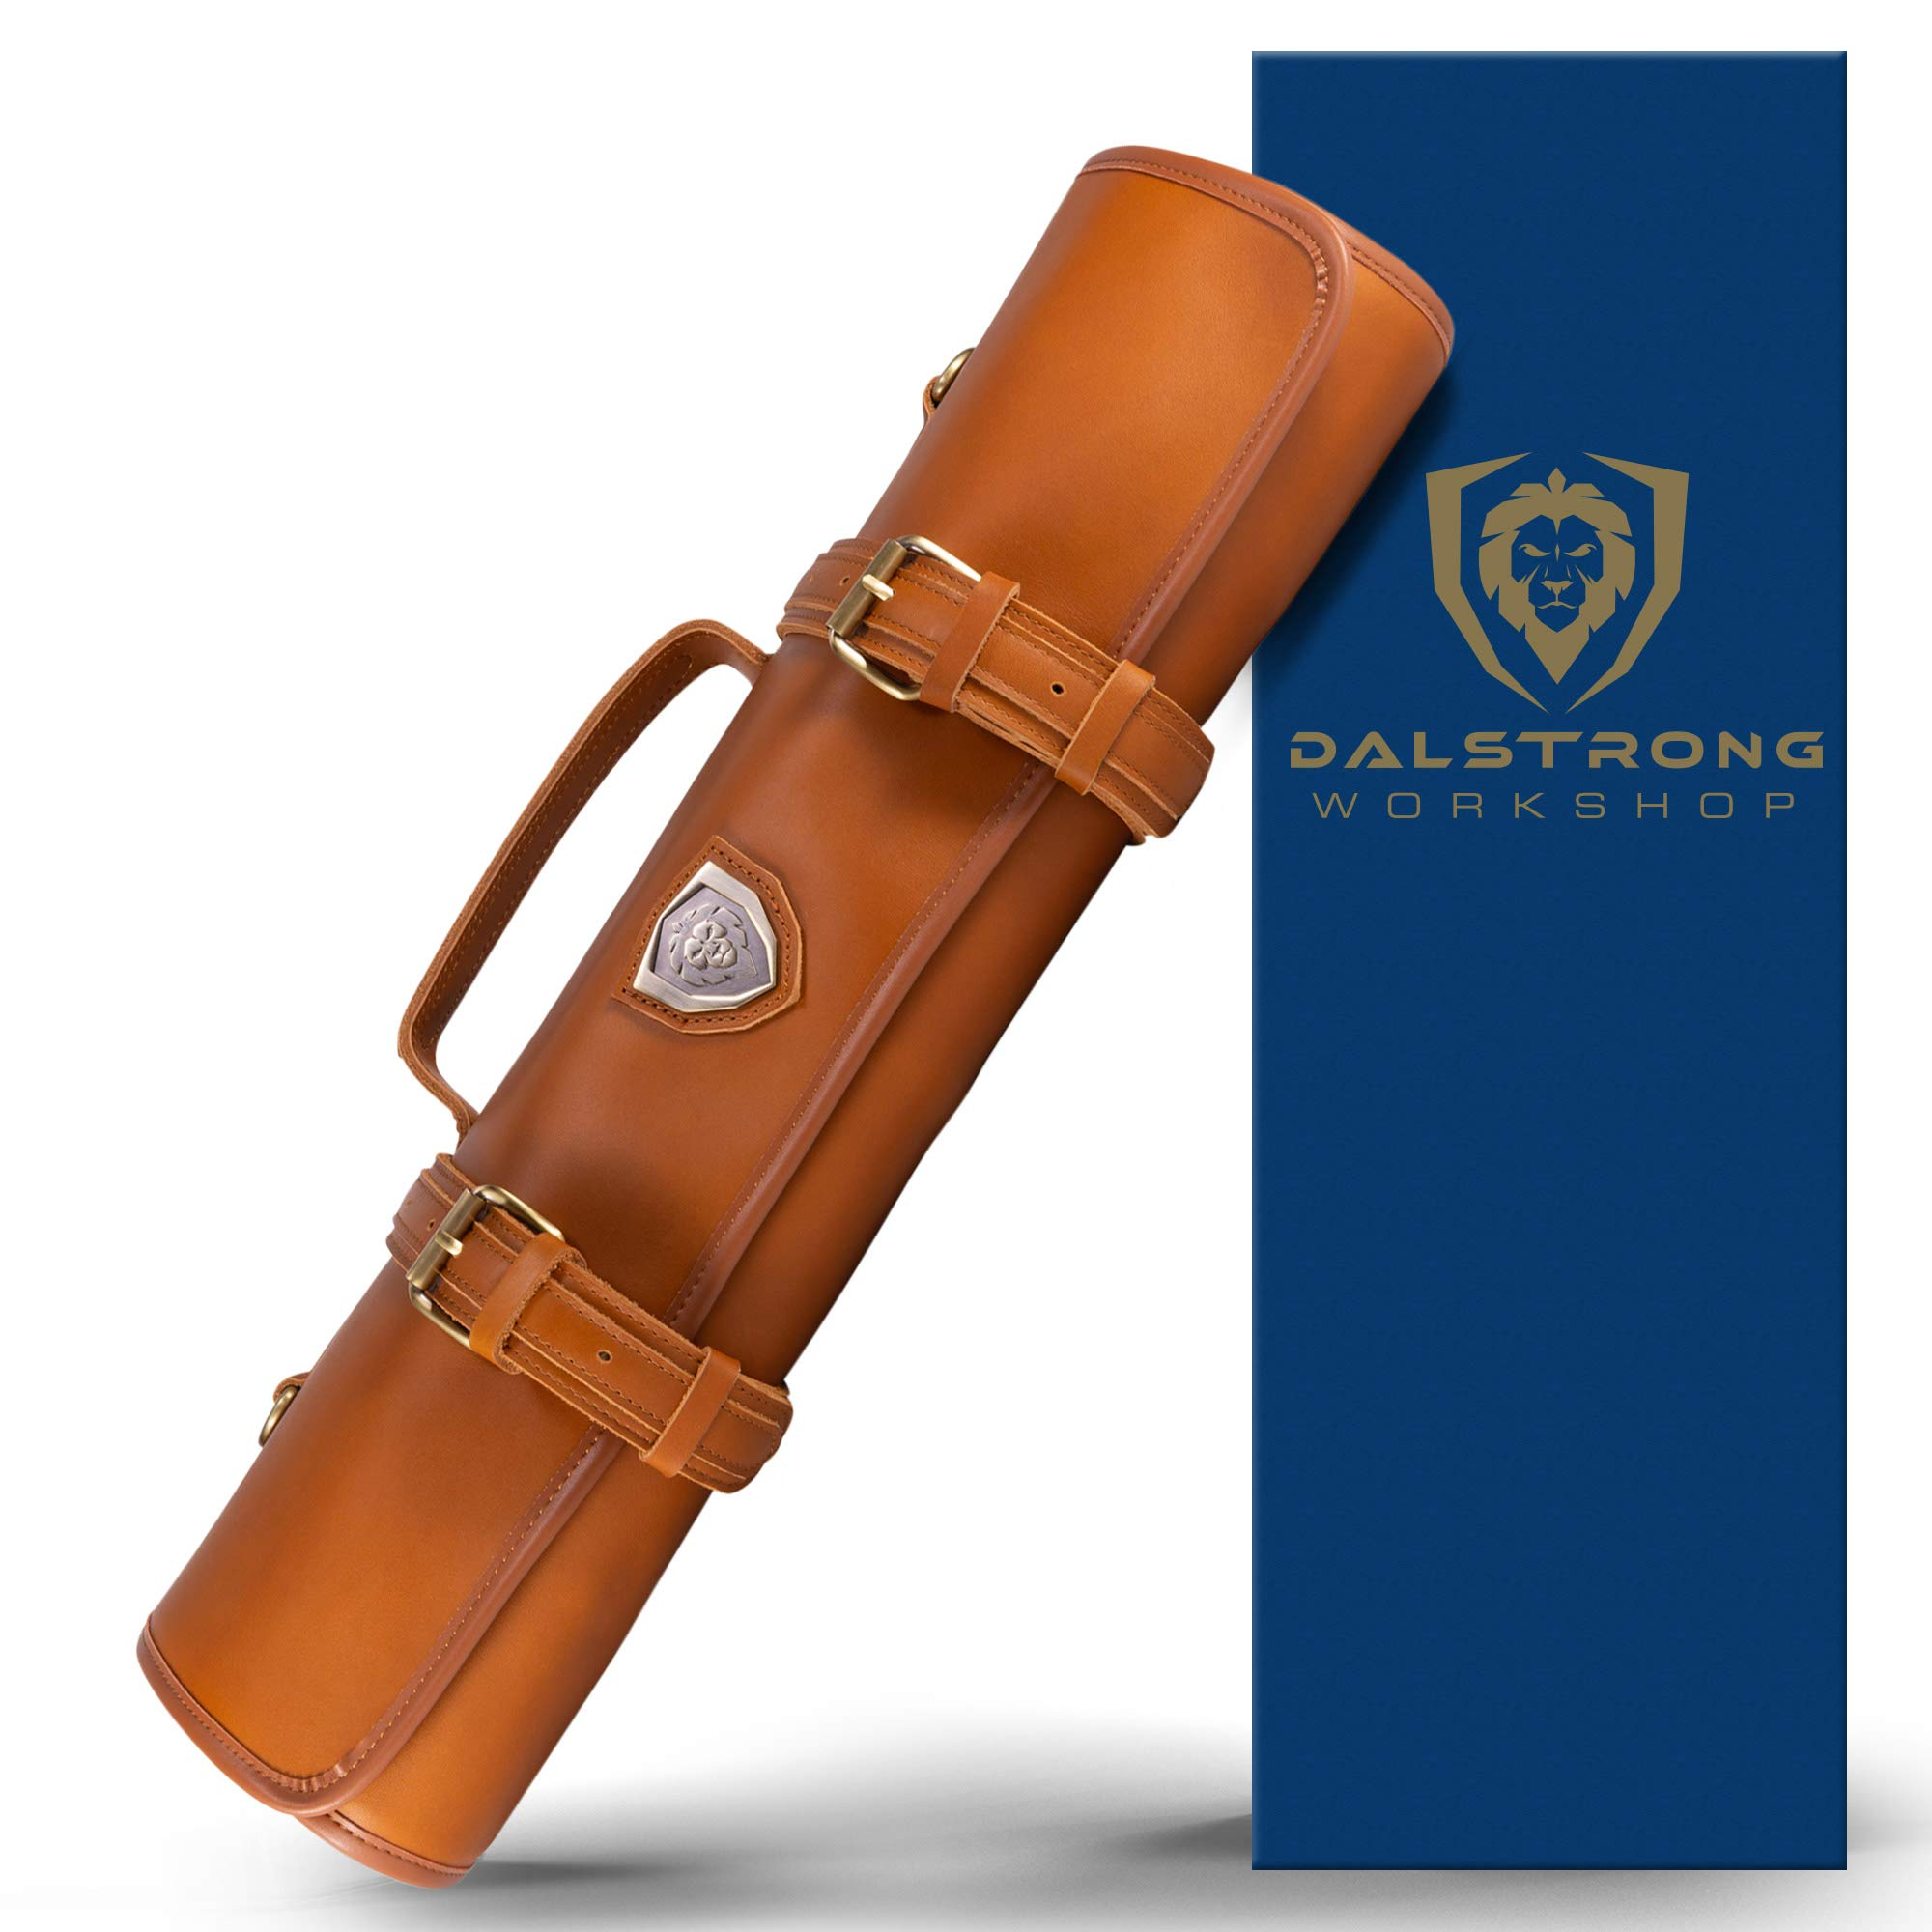 Dalstrong - Vagabond Knife Roll Full & Top Grain Brazilian Leather Roll Bag - 16 Slots - Interior and Rear Zippered Pockets - Blade Travel Storage/Case (California Brown)